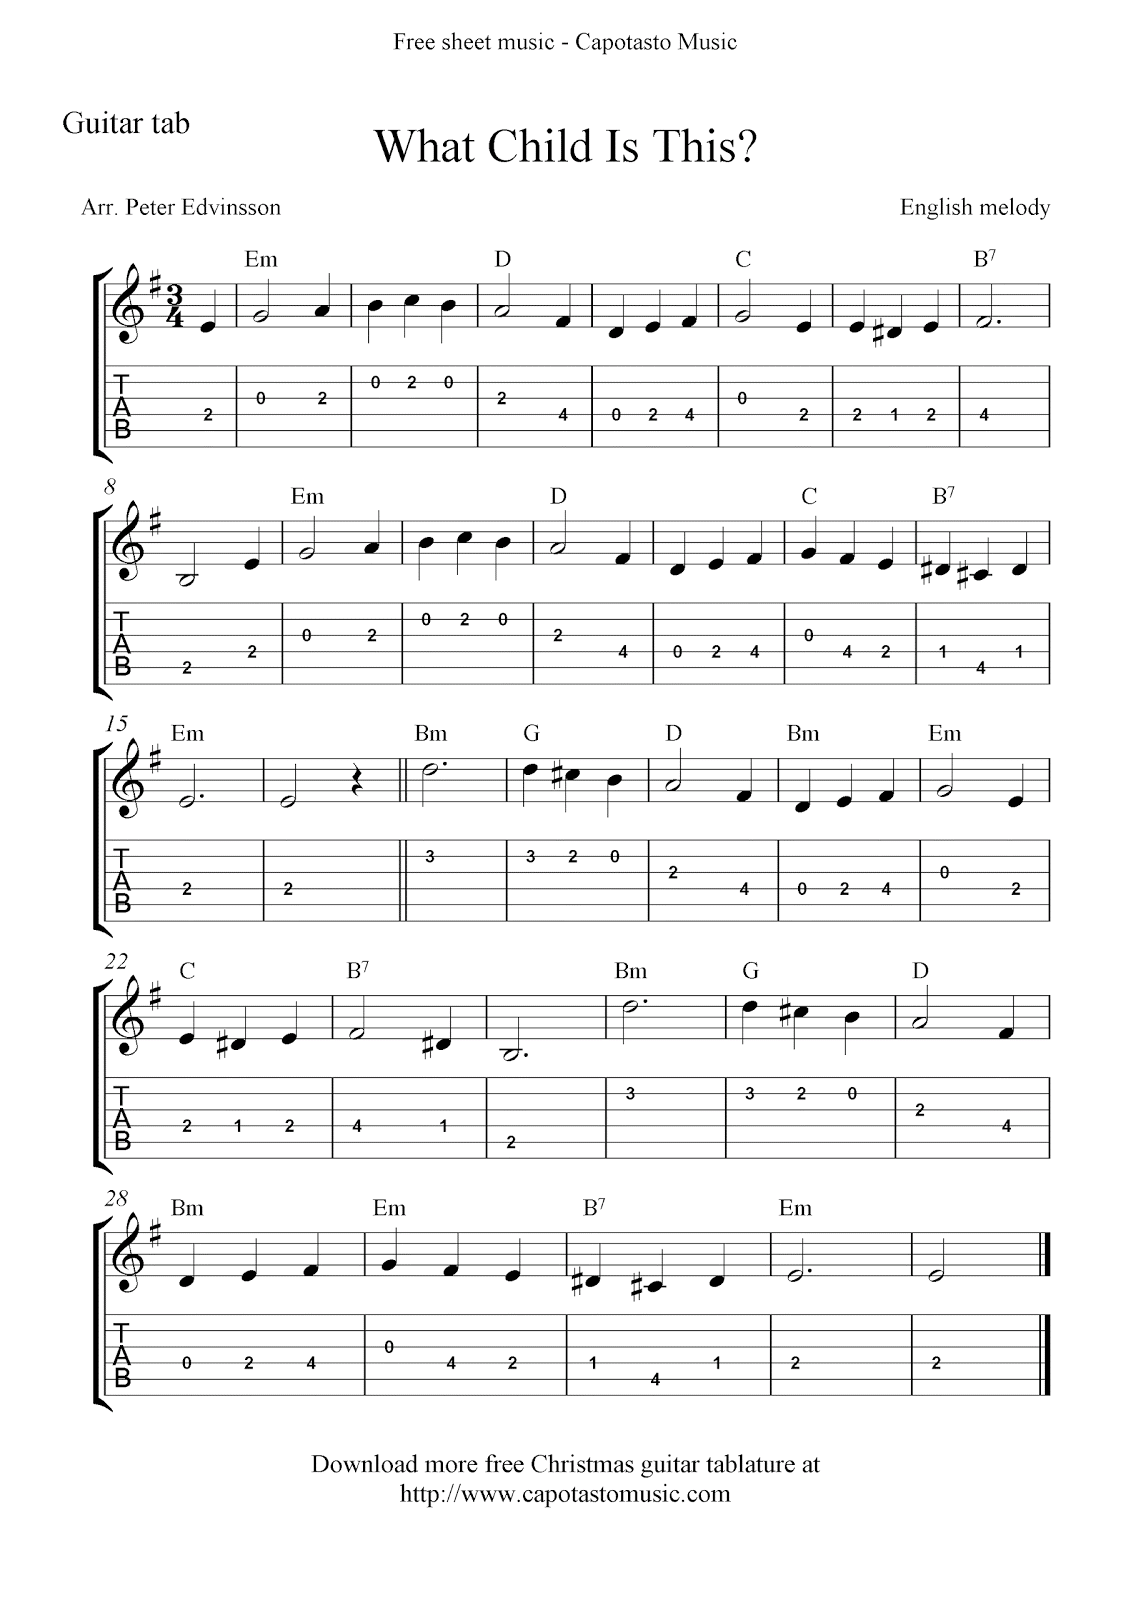 What Child Is This?, free Christmas guitar tab sheet music